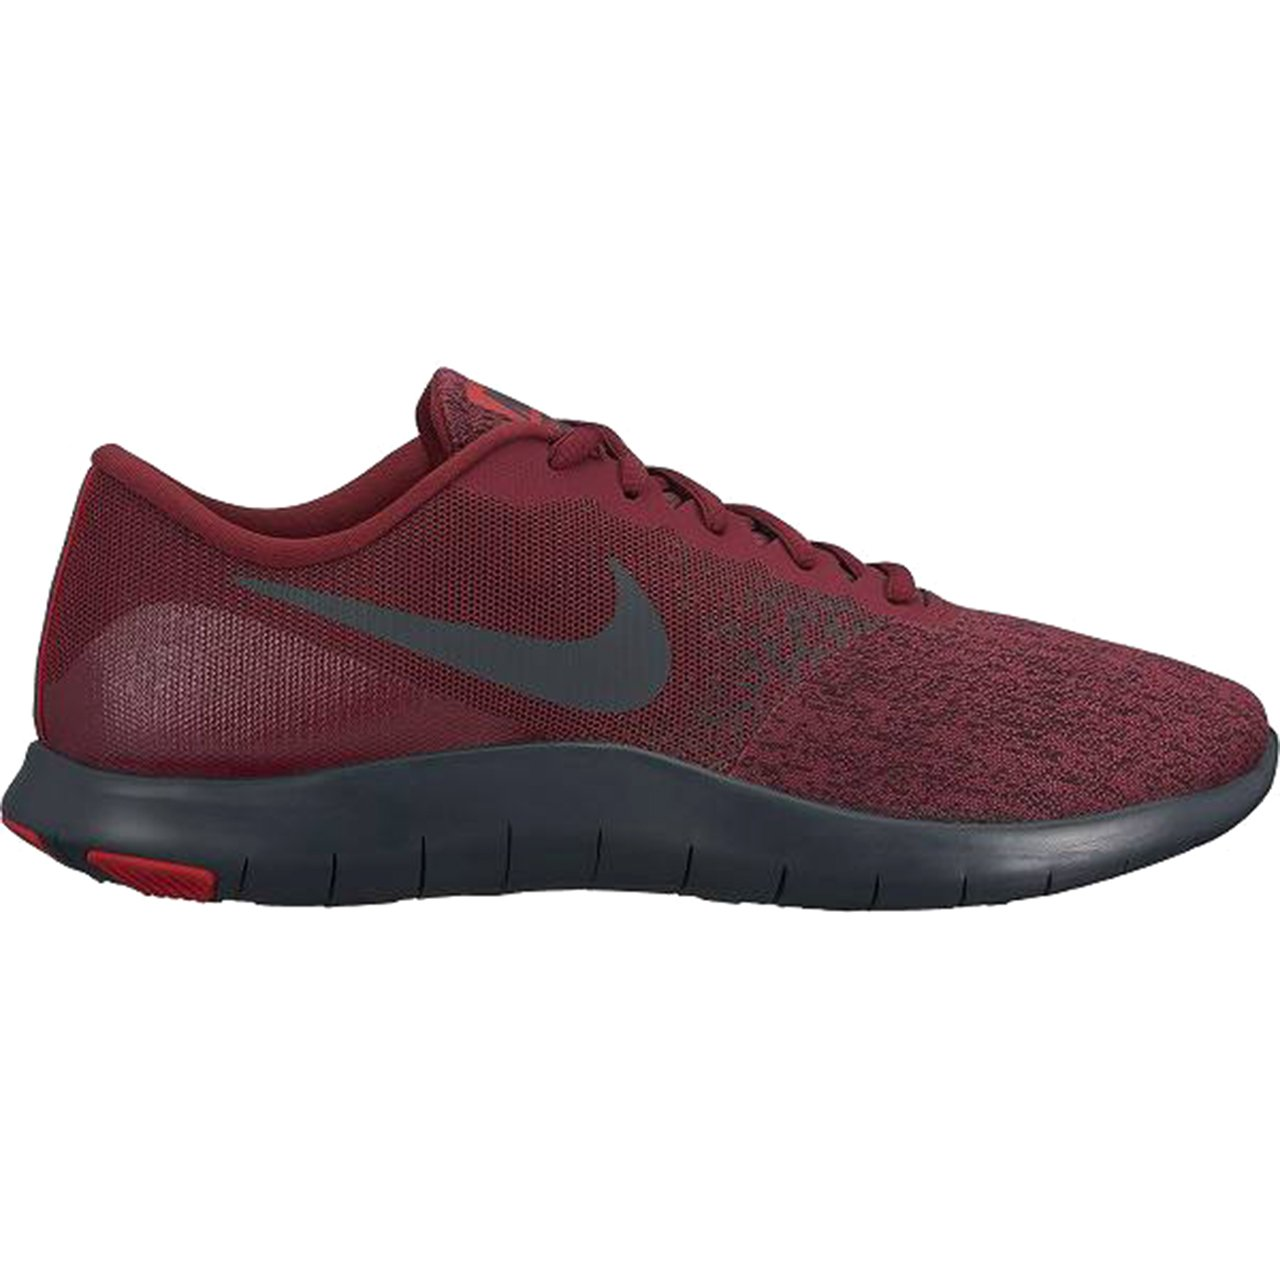 Nike Mens Flex Contact Team Red/Anthracite-University Red 7.5